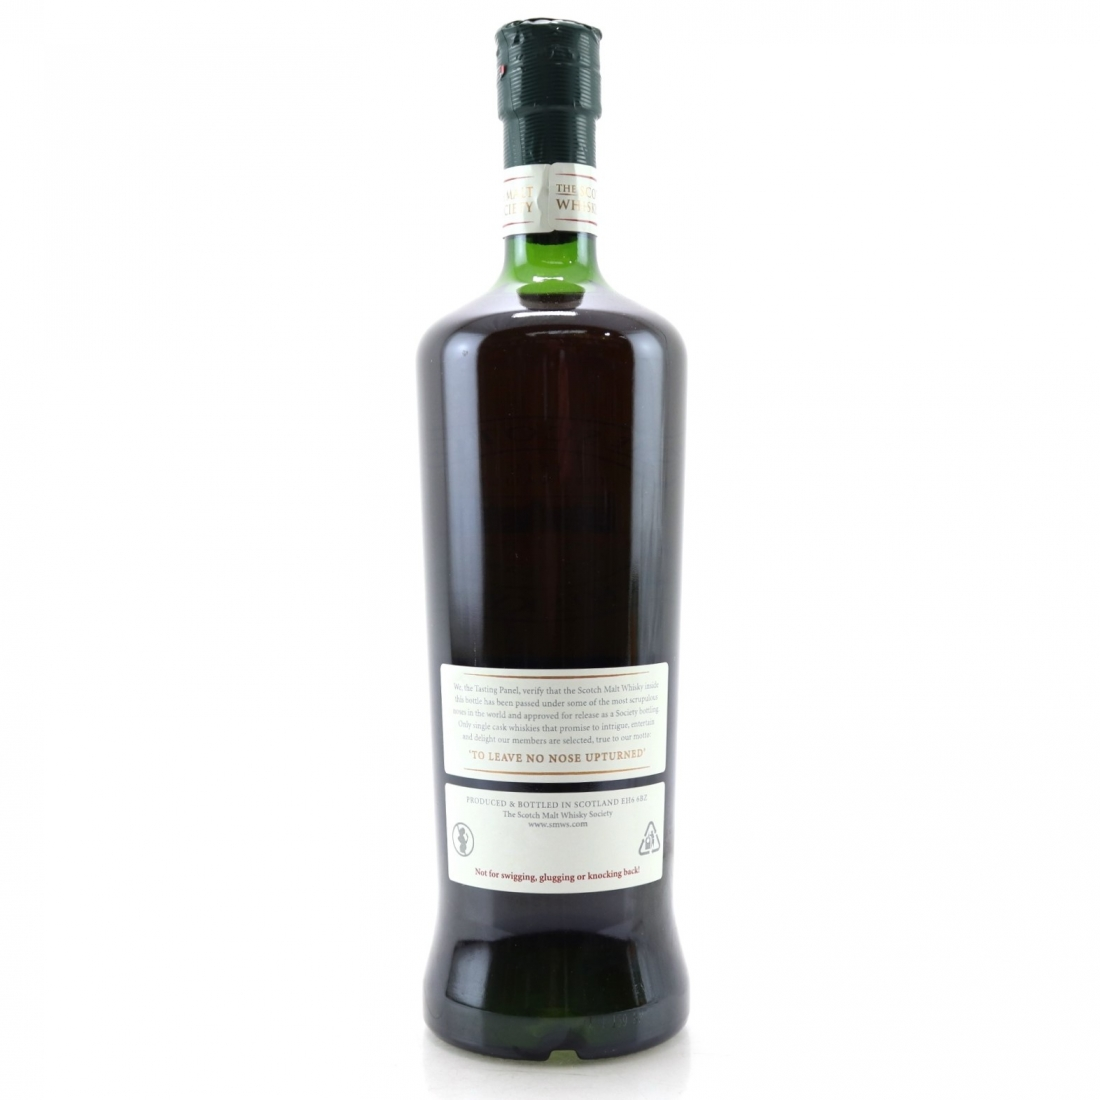 Mortlach 21 Year Old SMWS 76.84